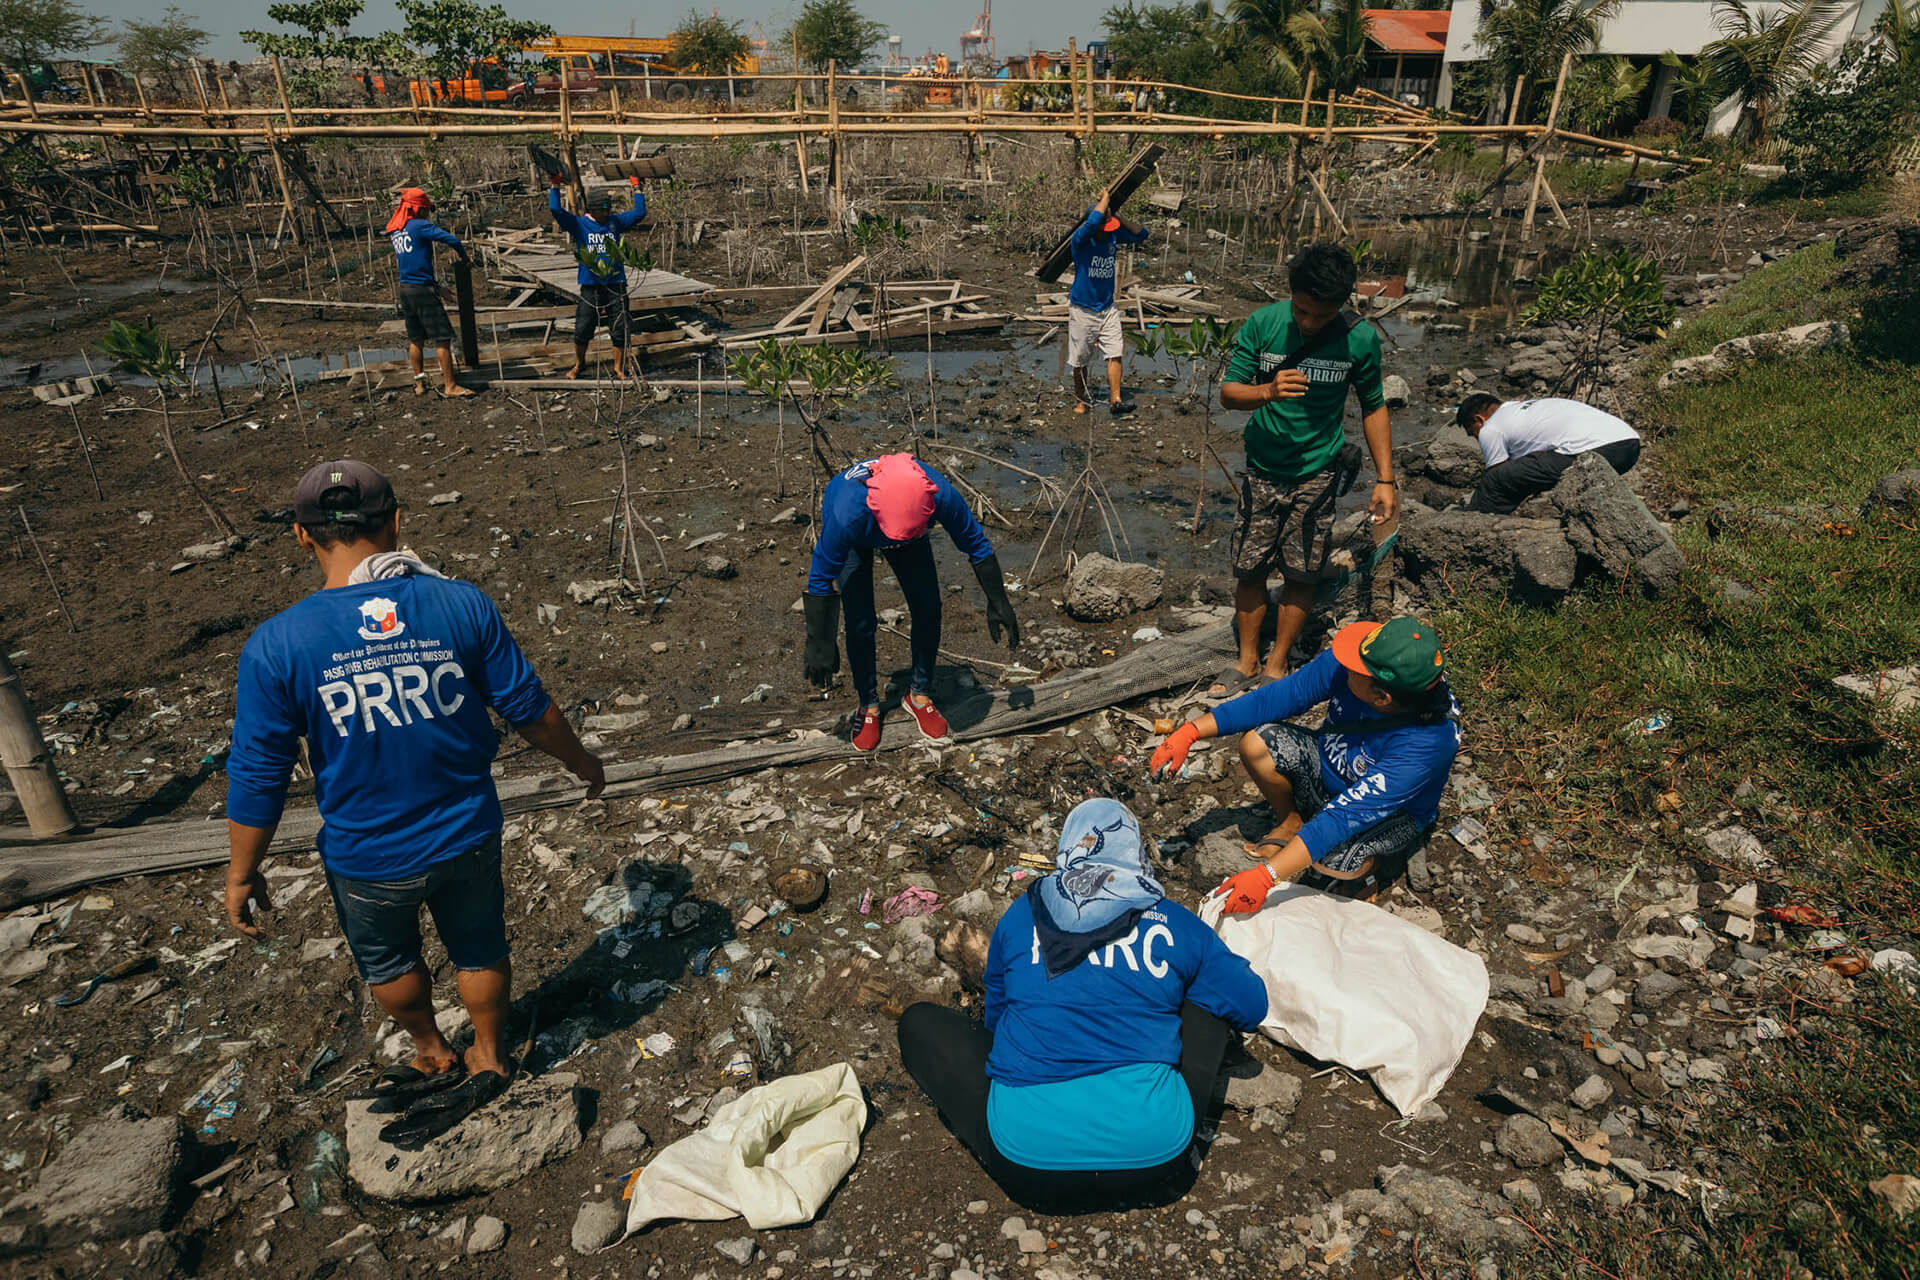 The volunteer Pasig River Warriors at work